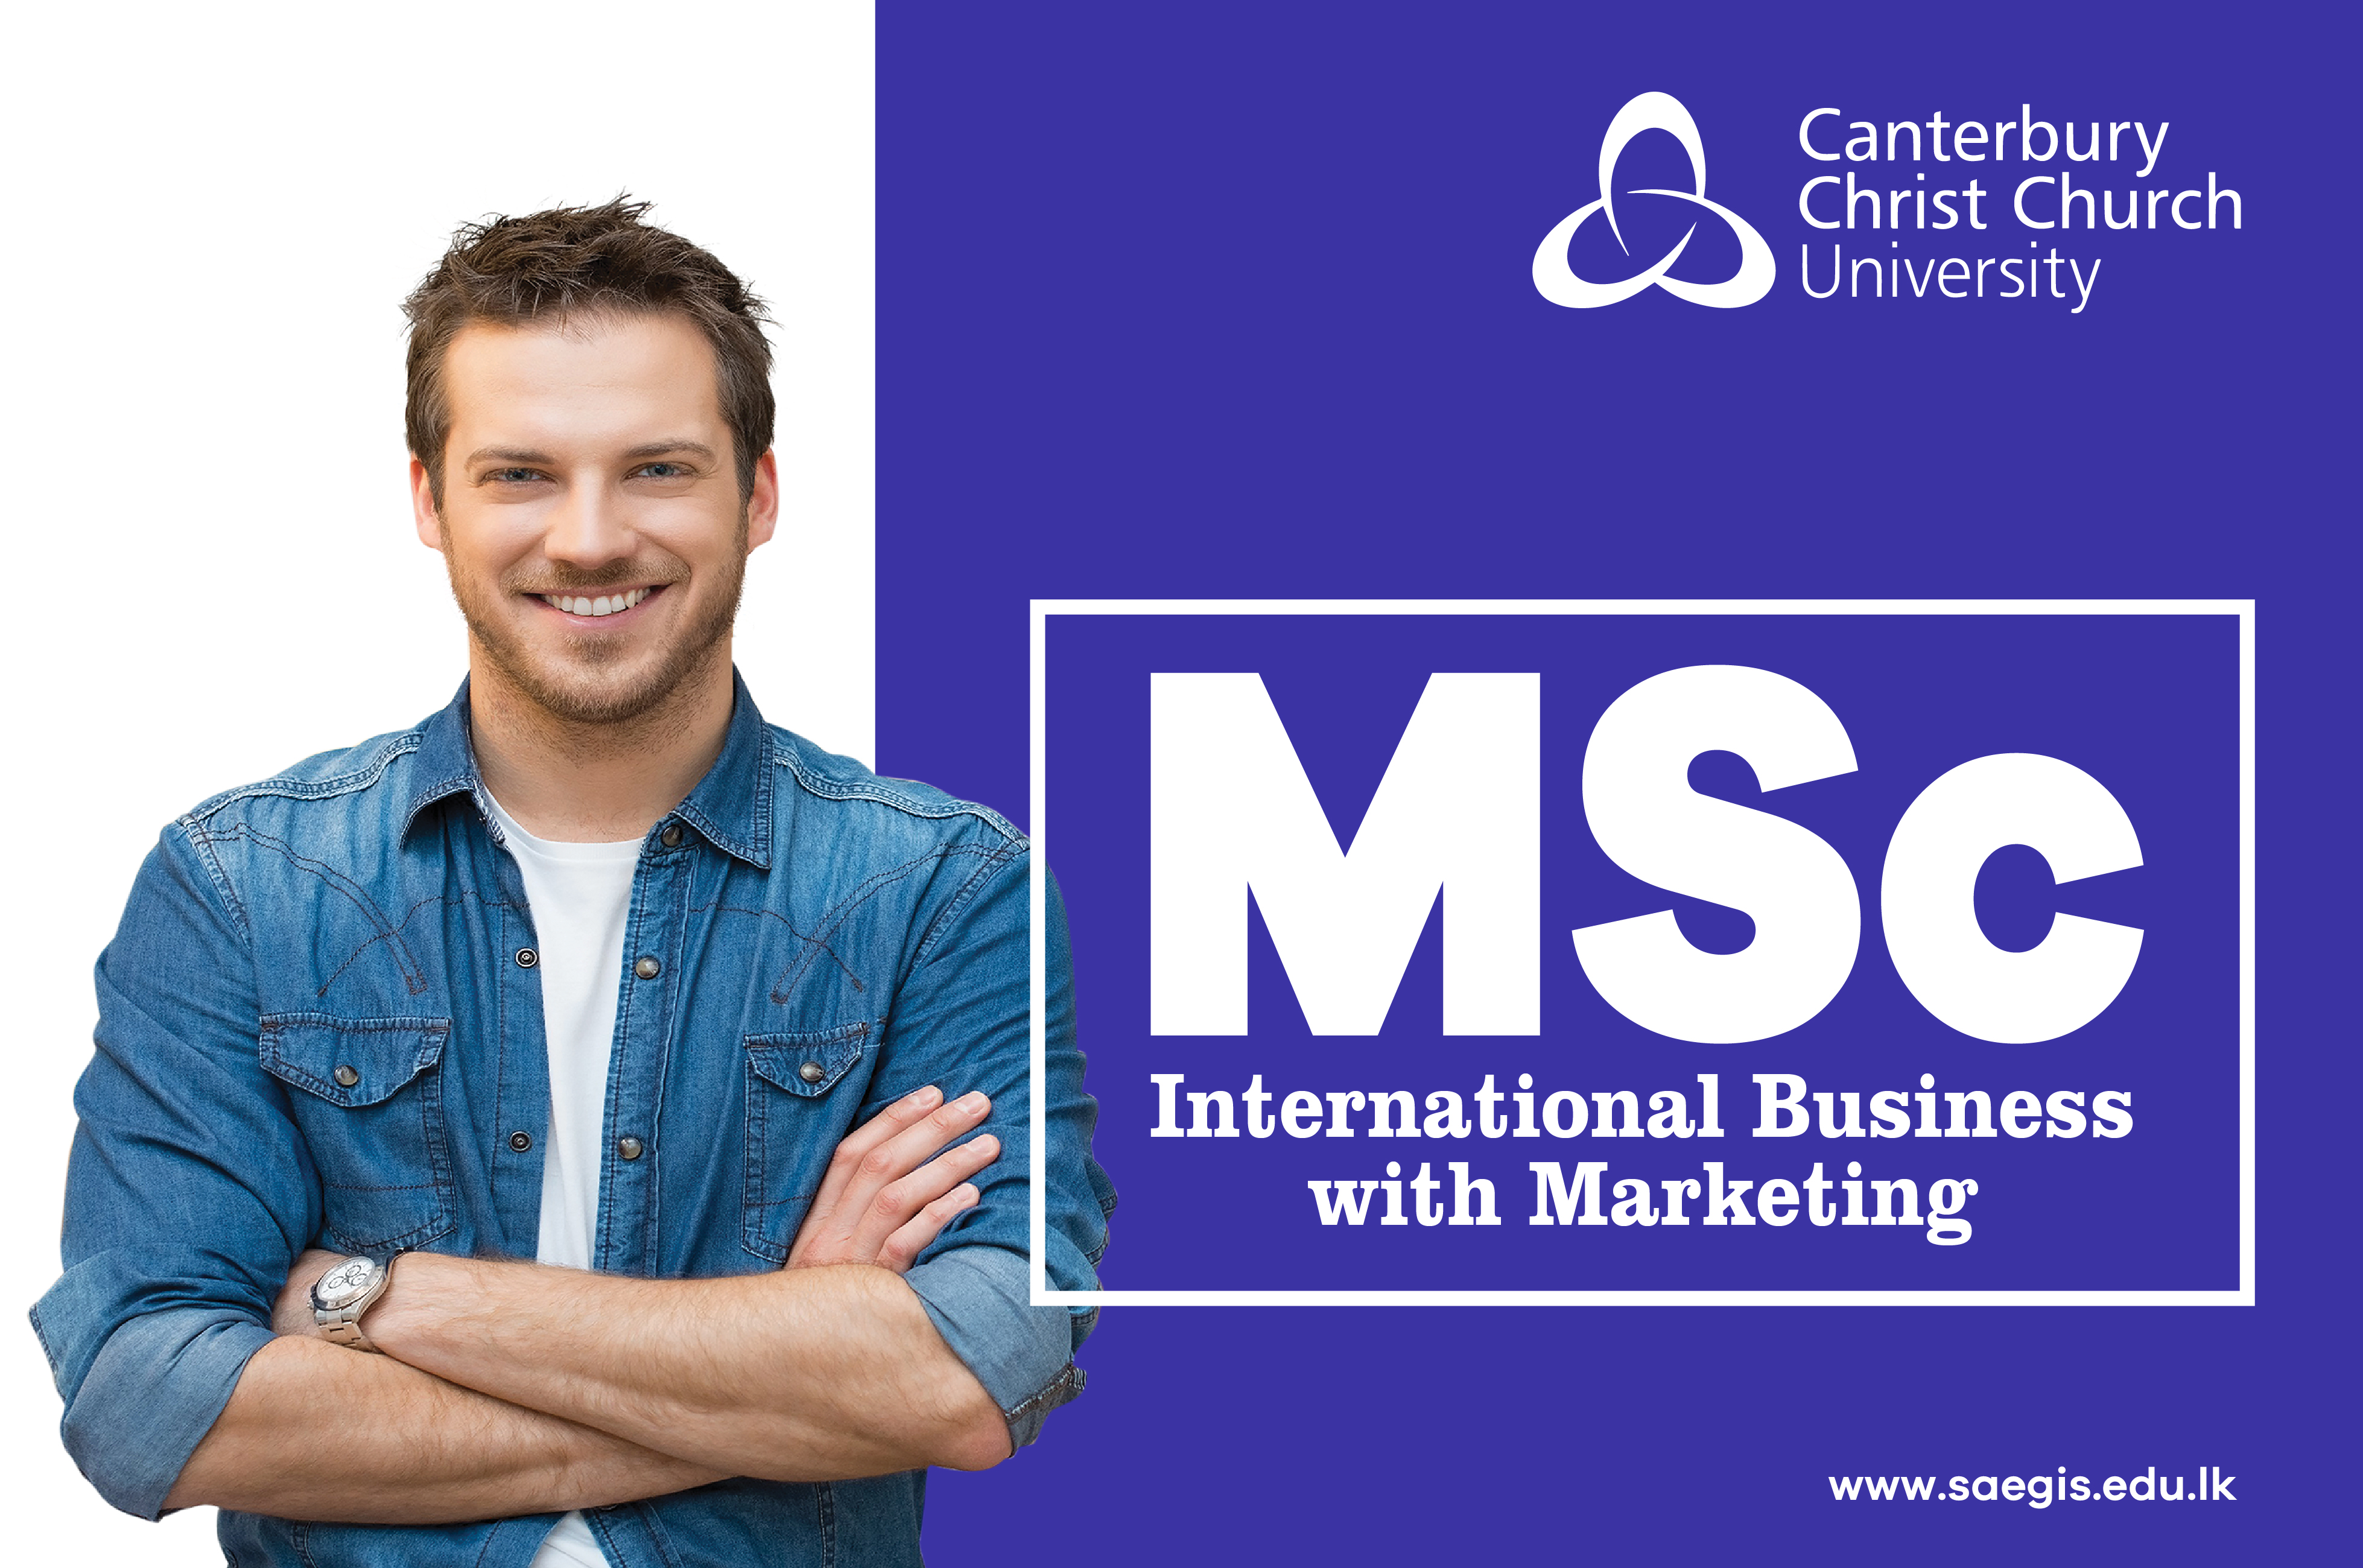 MSc in International Business with Marketing